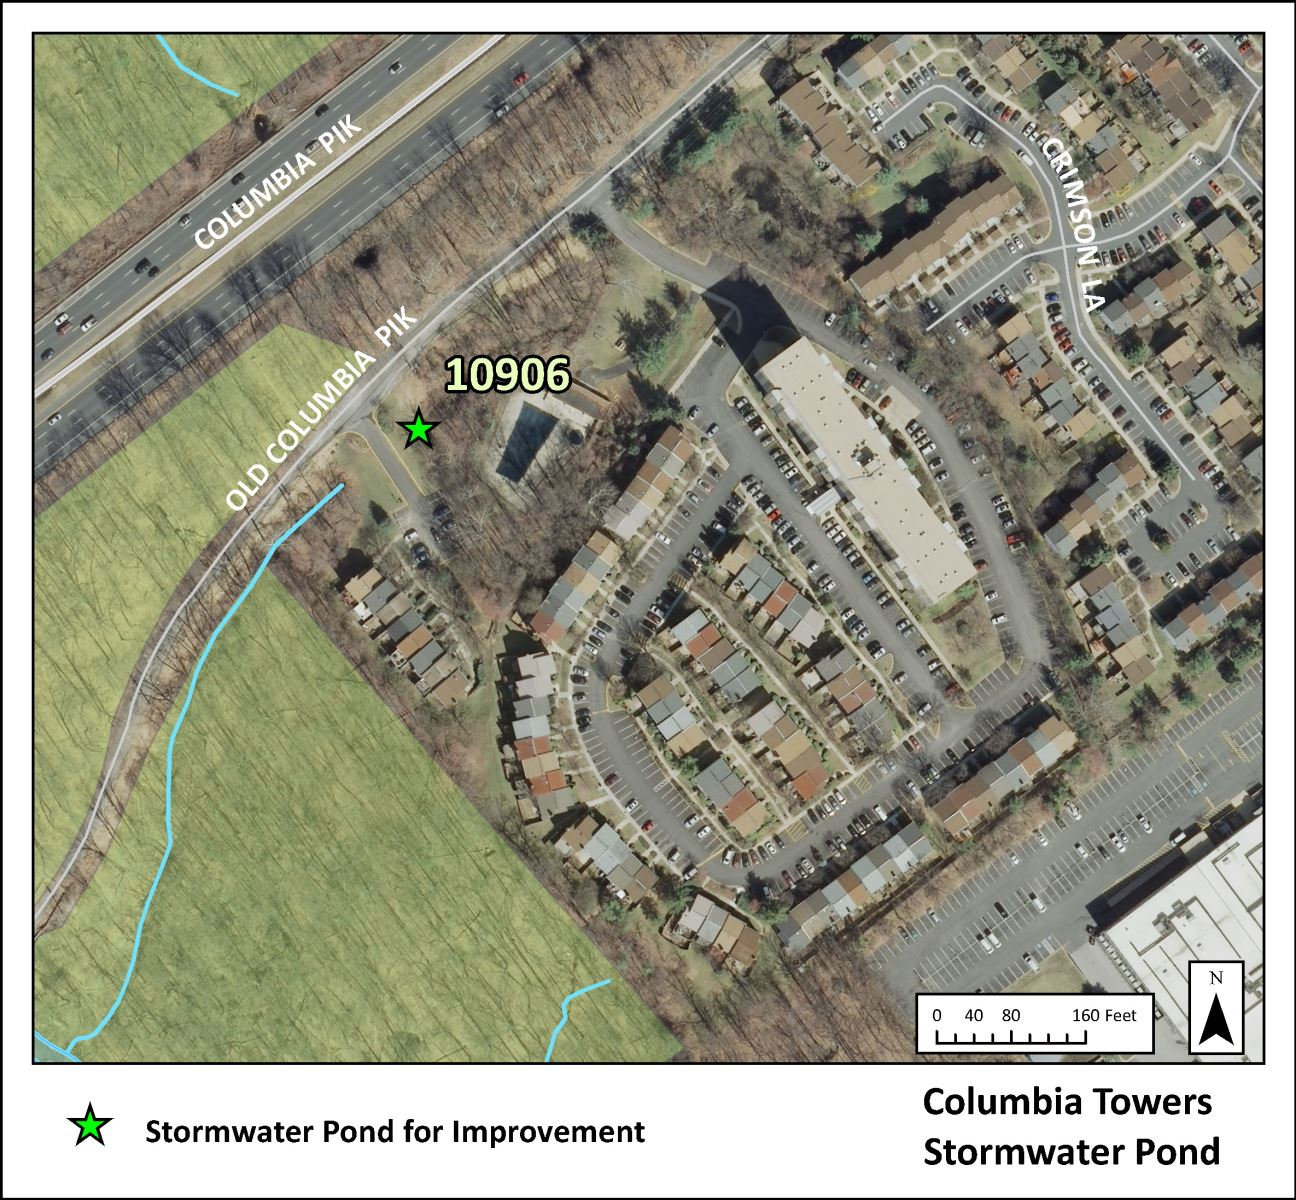 Image of Columbia Towers Asset 10906